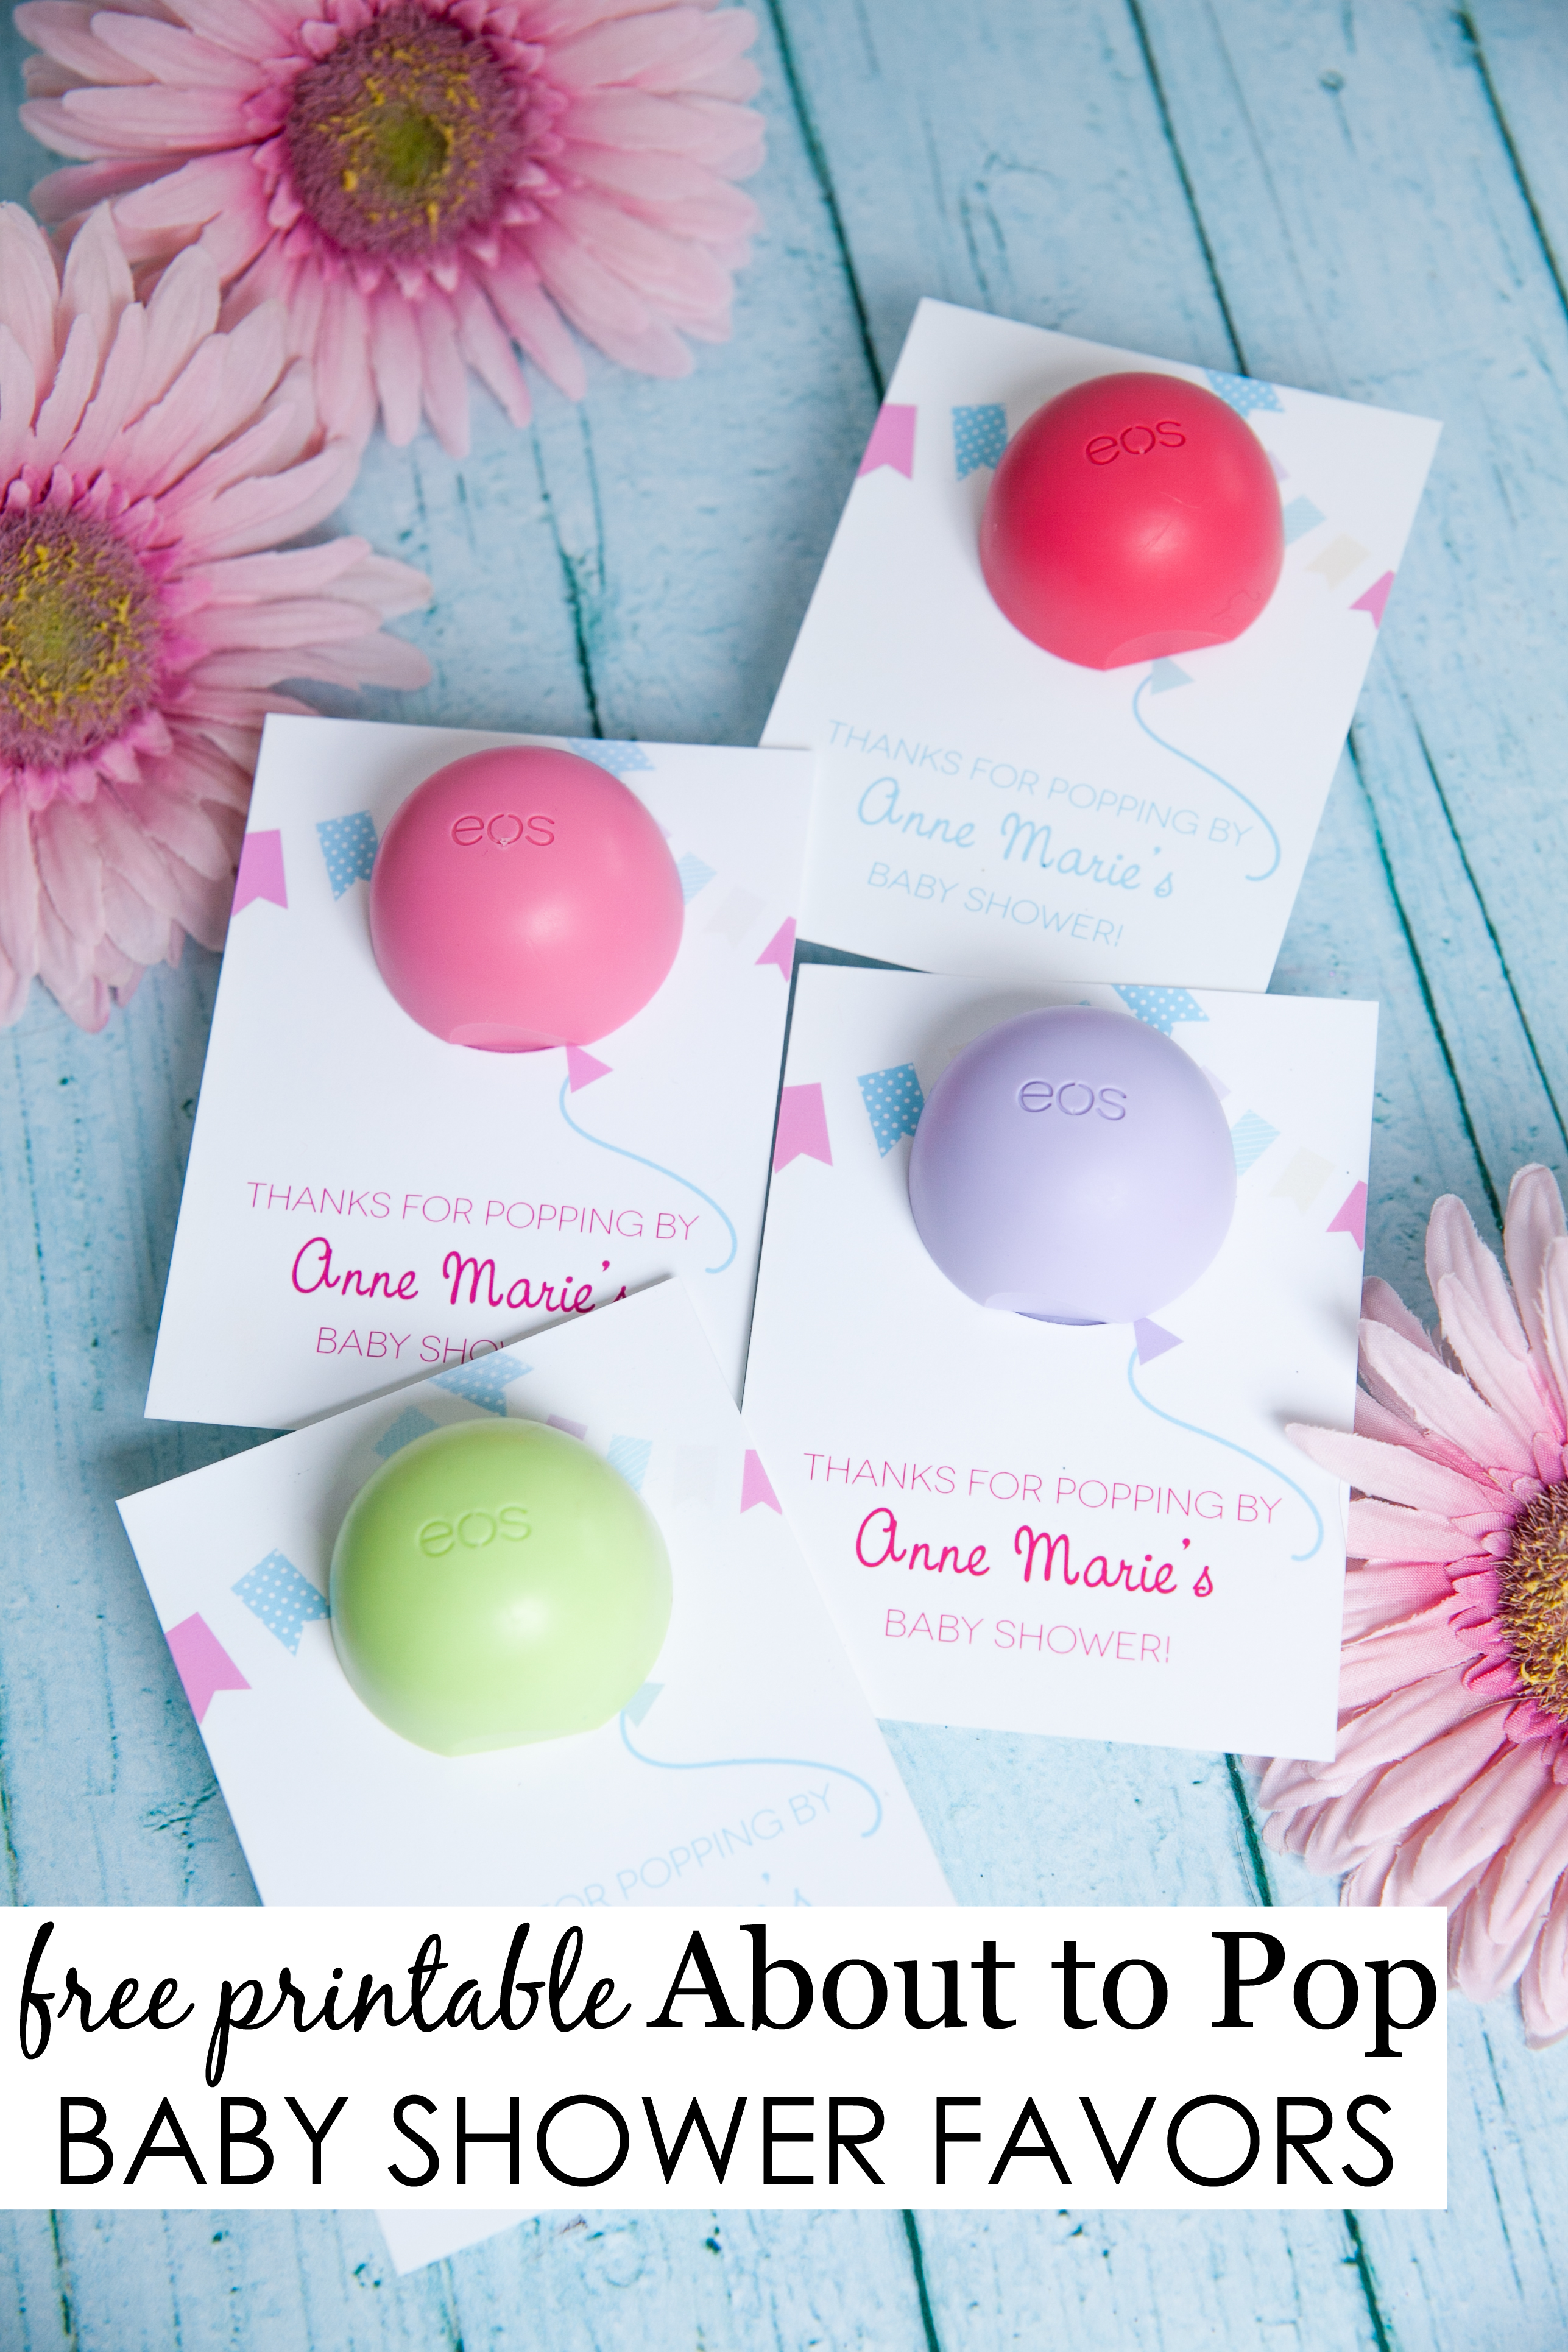 About To Pop Baby Shower Favor | Party Favors | Baby Shower - Ready To Pop Free Printable